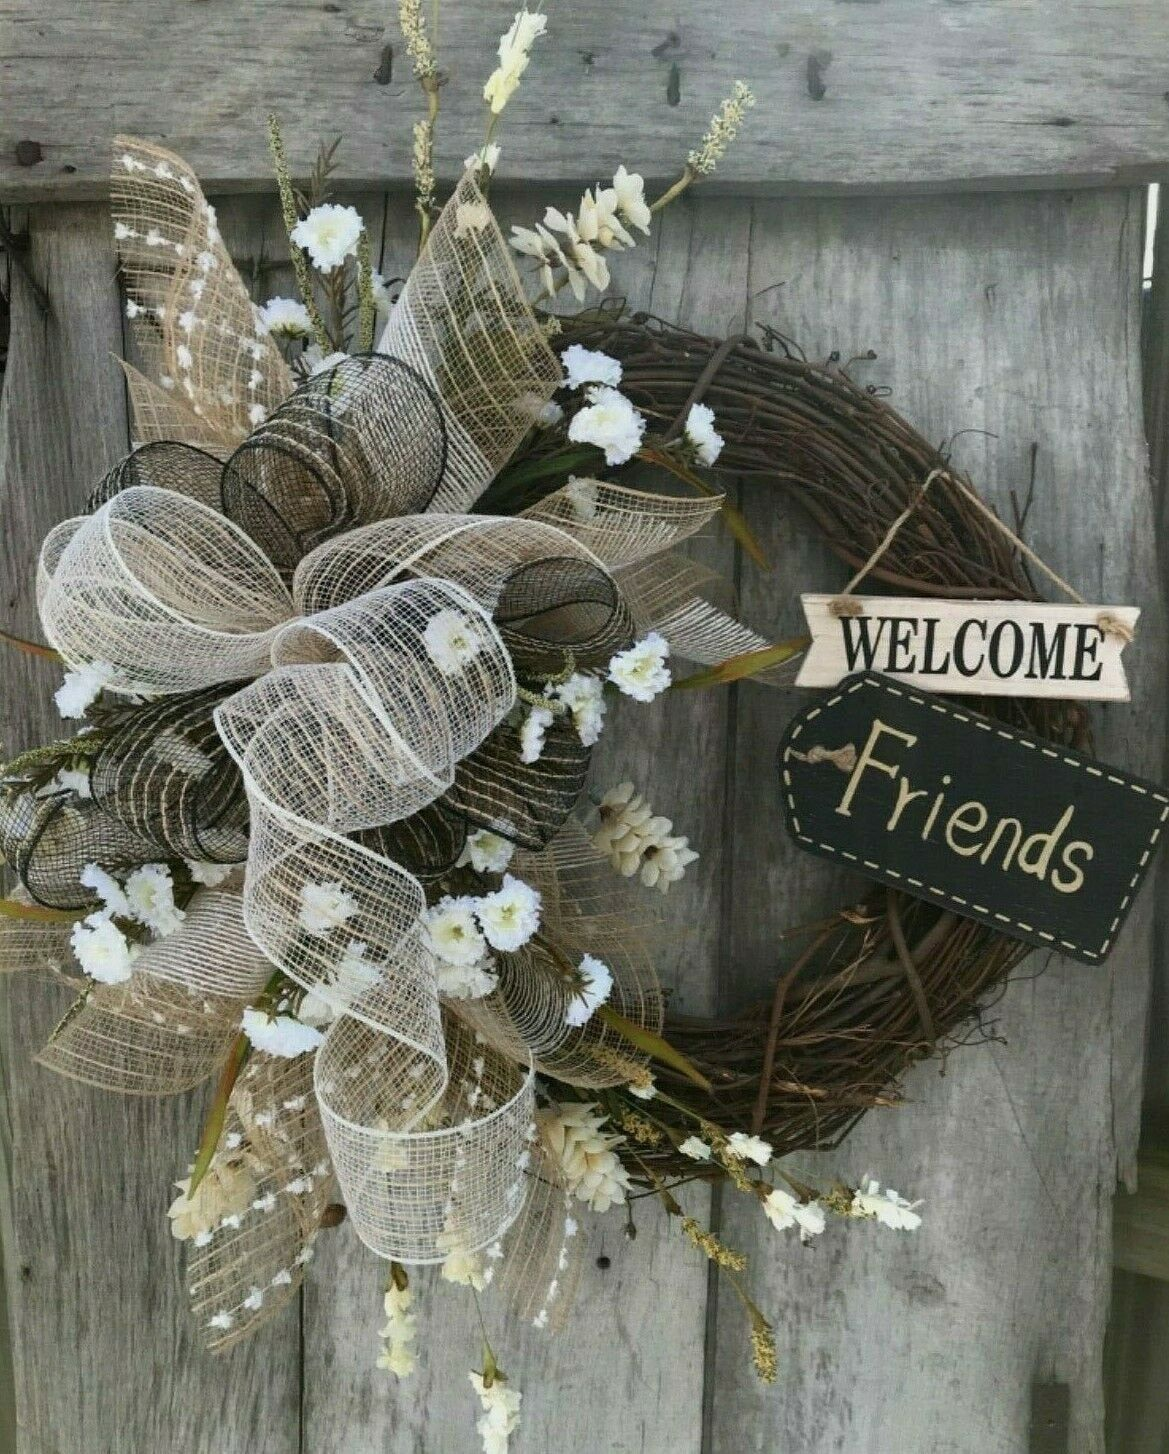 Photo of Welcome friends summer wreaths for front door, decorative net wreath, grapevine, peasant wreath, welcome wreath, summer door decor, wall decor